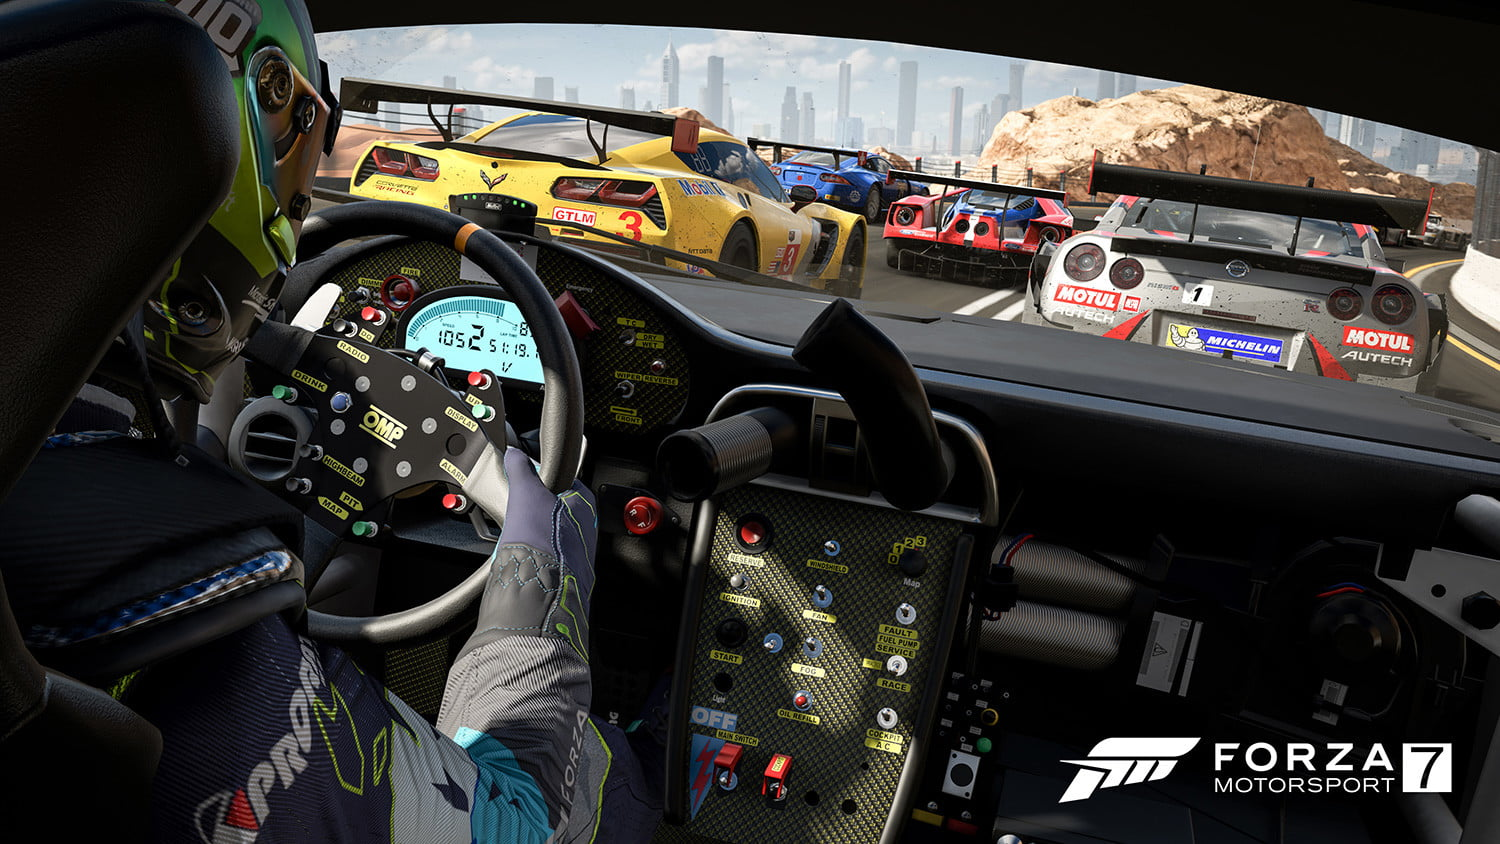 Forza Motorsport 7 Review: Why Realistic Racing Rules